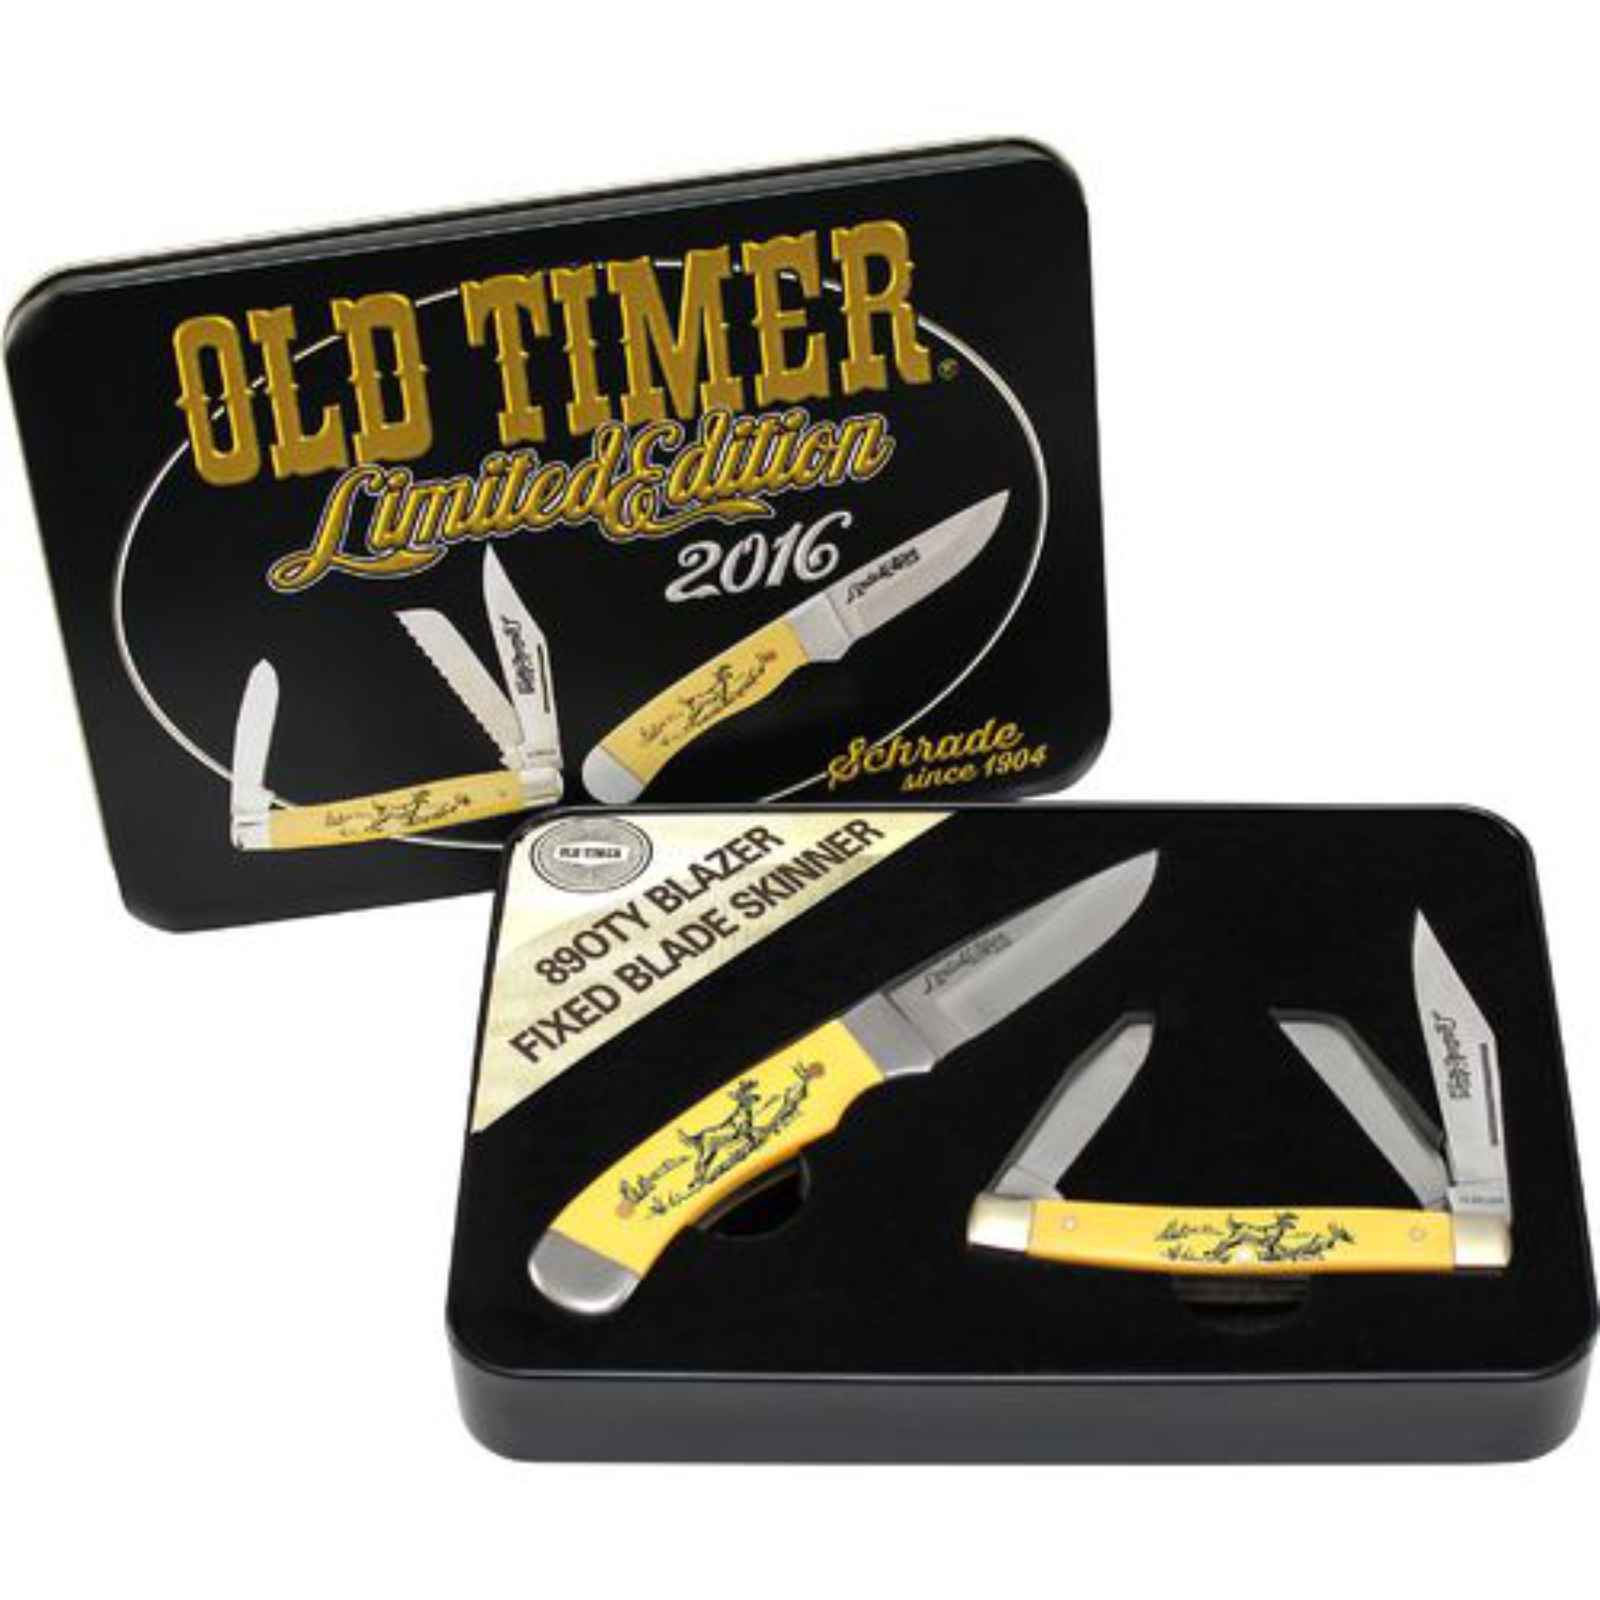 Schrade Old Timer Scrimsaw Gift Set With Skinner and Stockman , SCPROM-16-32CP